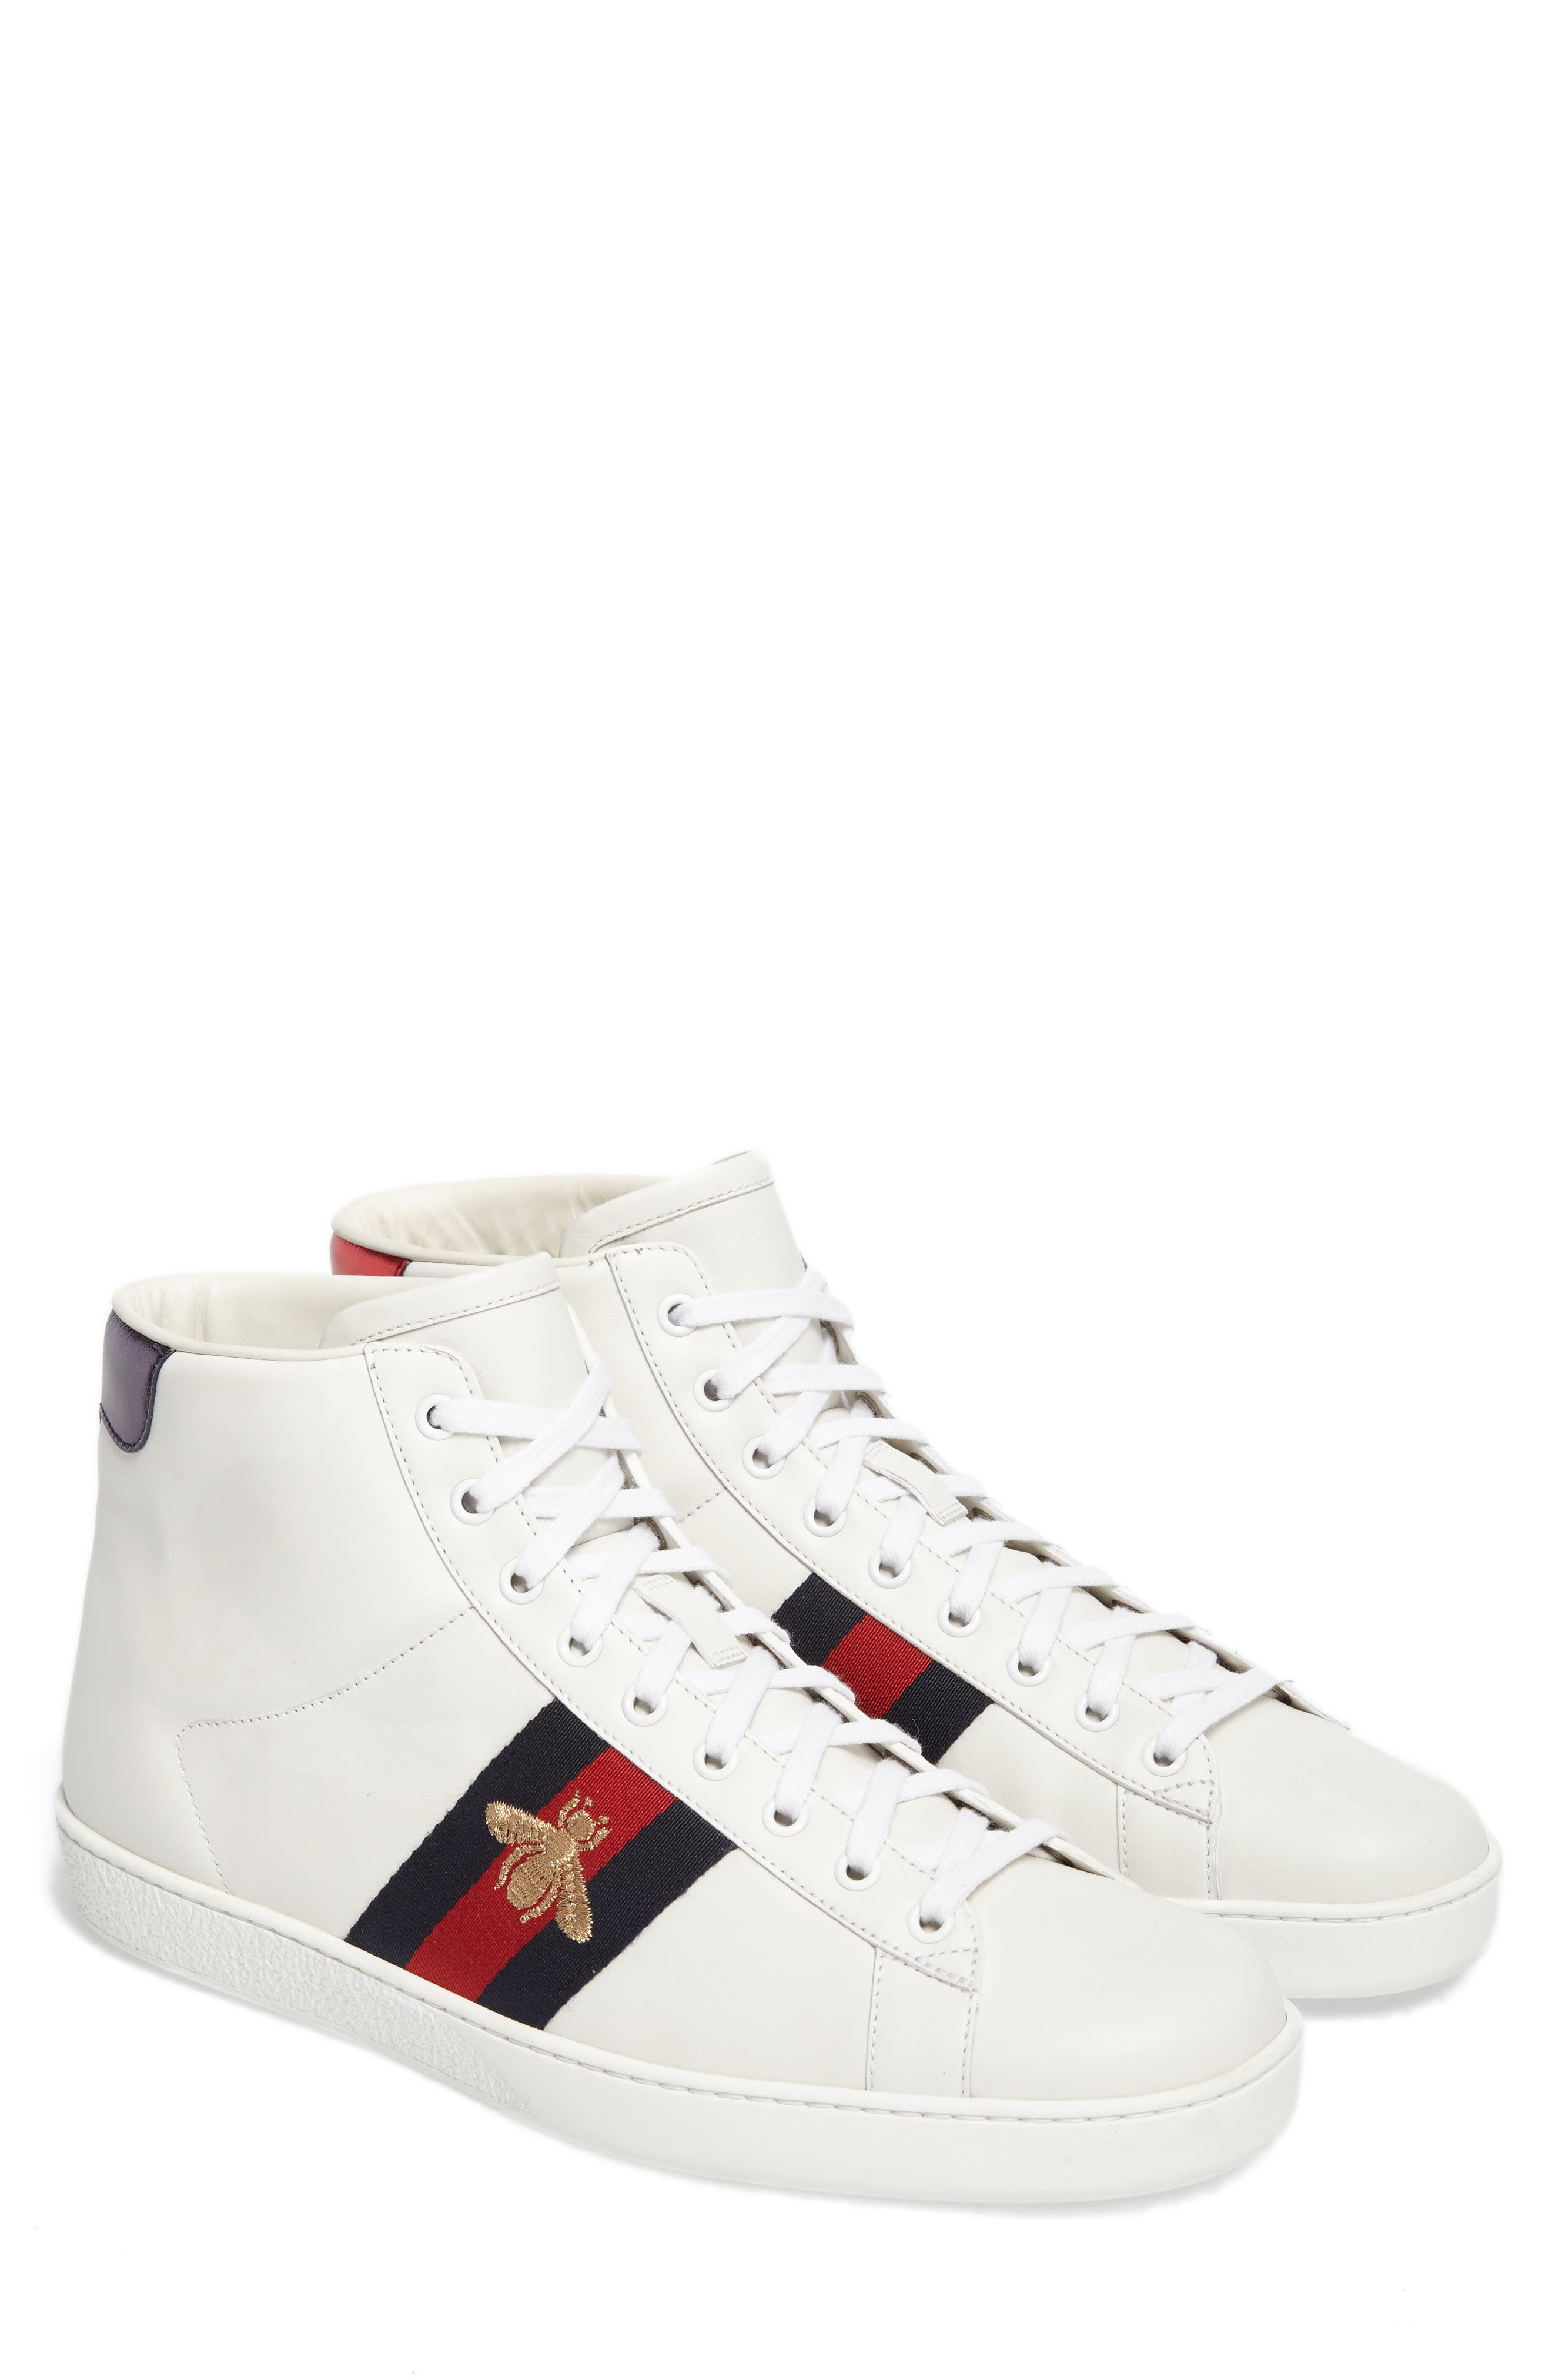 Main Image - Gucci New Ace High Bee Sneaker (Men)